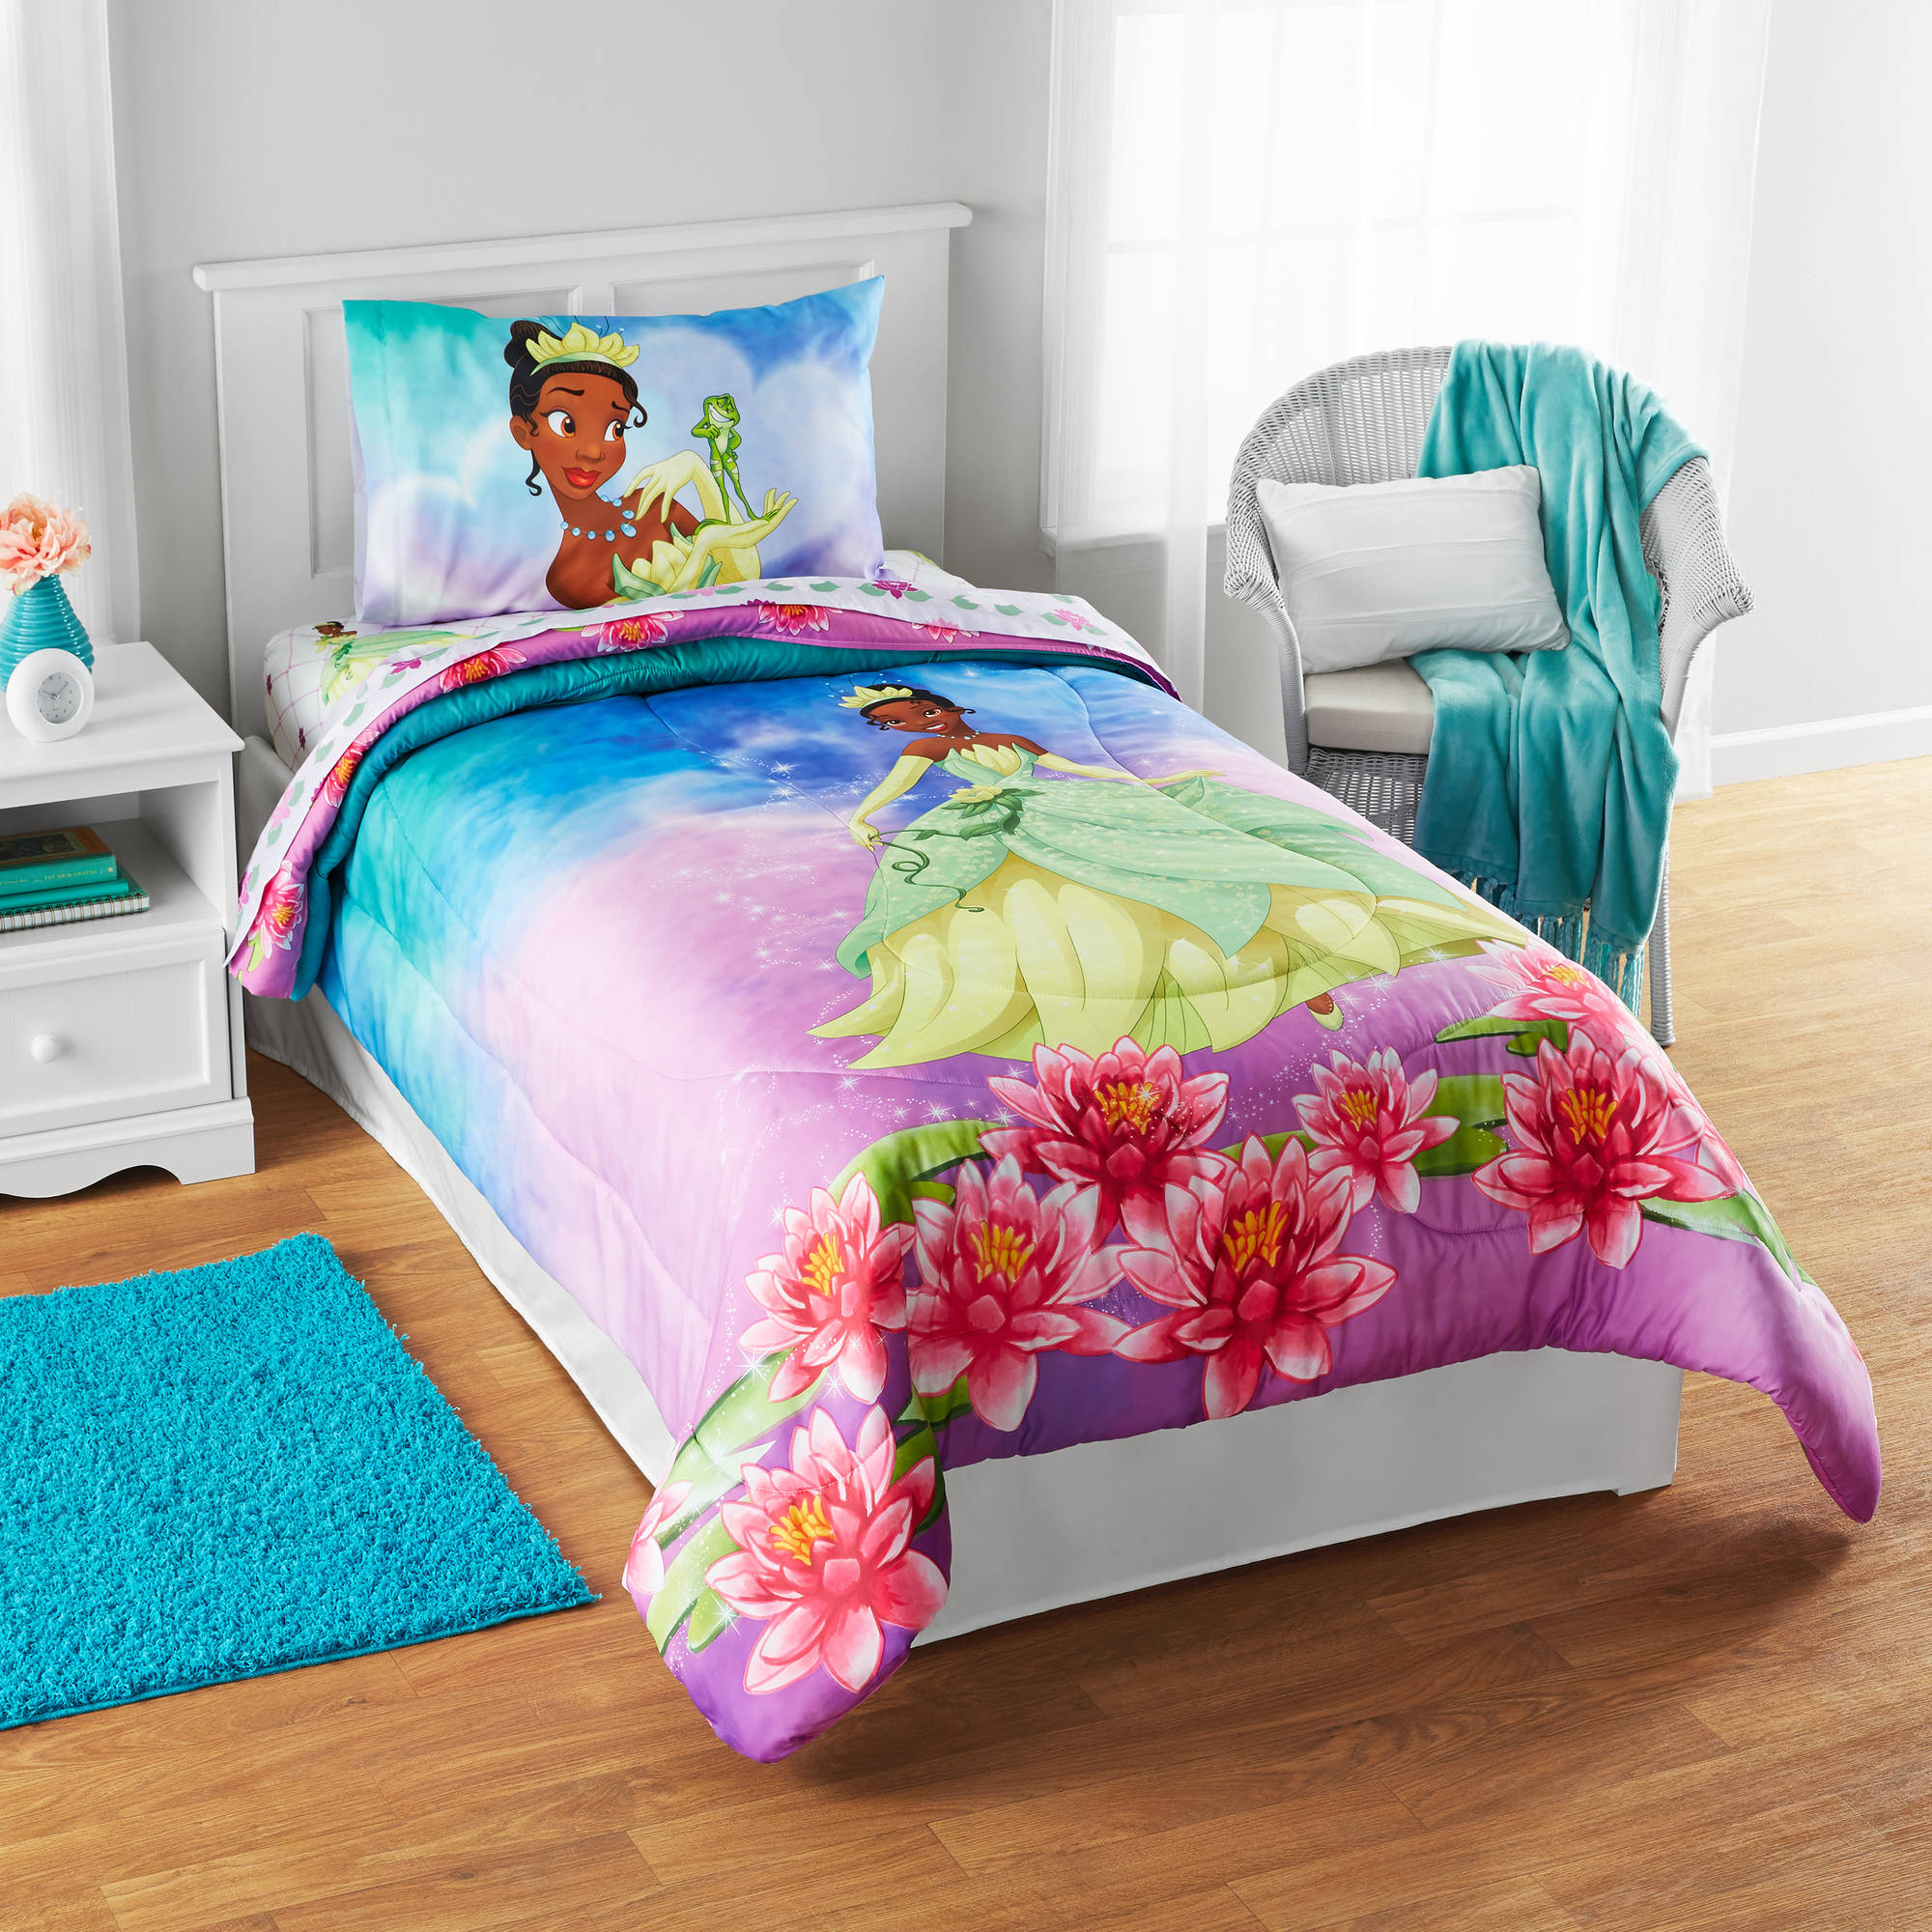 "Disney Tiana ""Tiana Dreams"" Reversible Twin/Full Bedding Comforter, Walmart Exclusive"